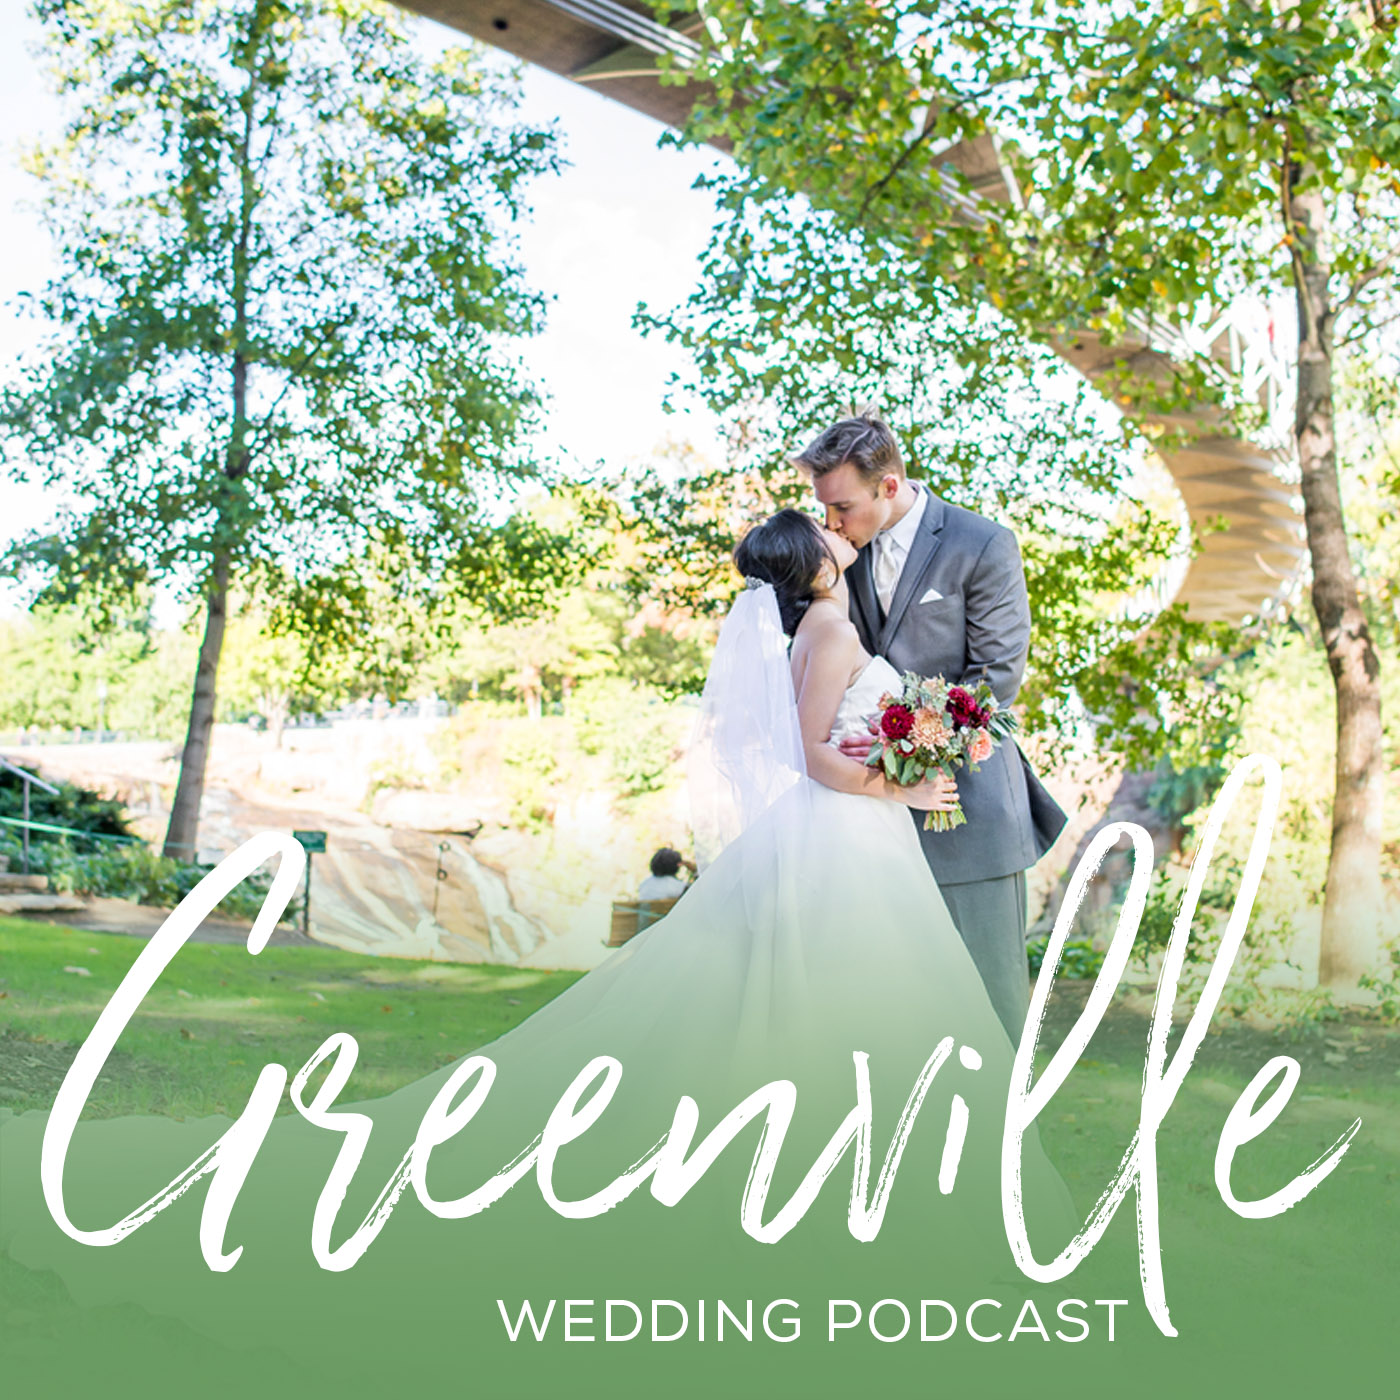 Greenville Wedding Podcast | Episode 3 - Erica Berg of Collective Music Solutions